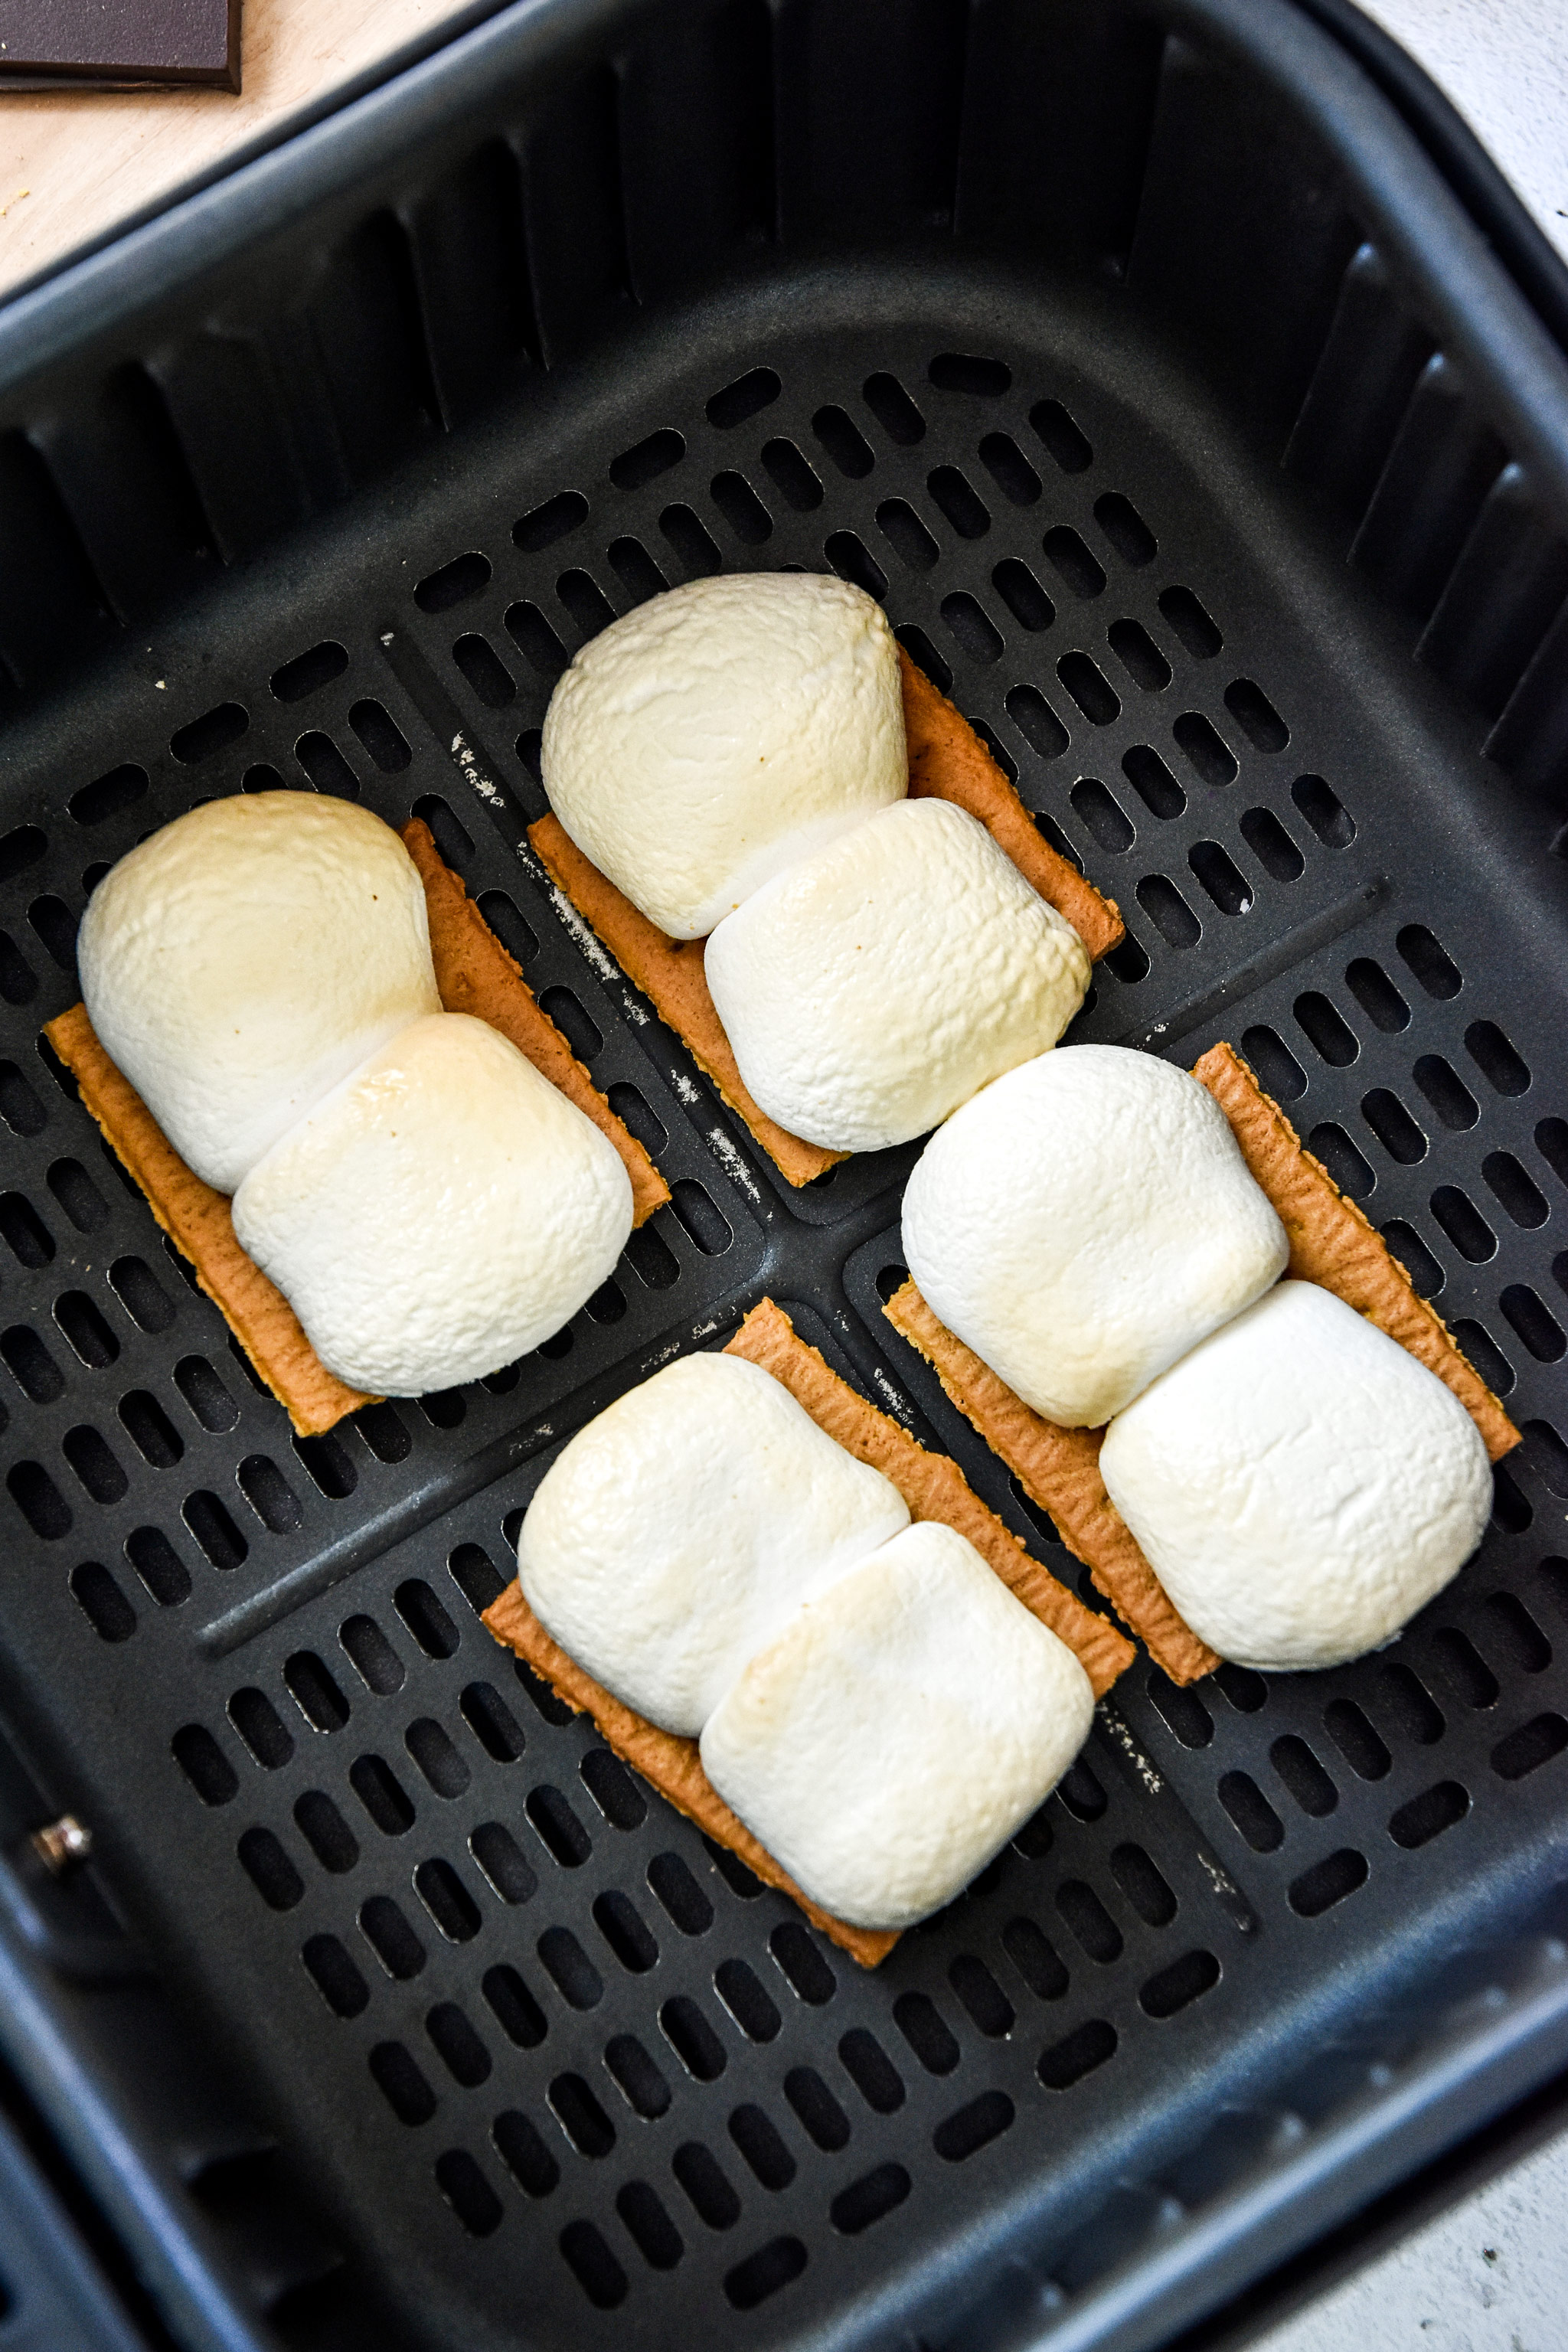 cooked marshmallows in the air fryer basket for s'mores.